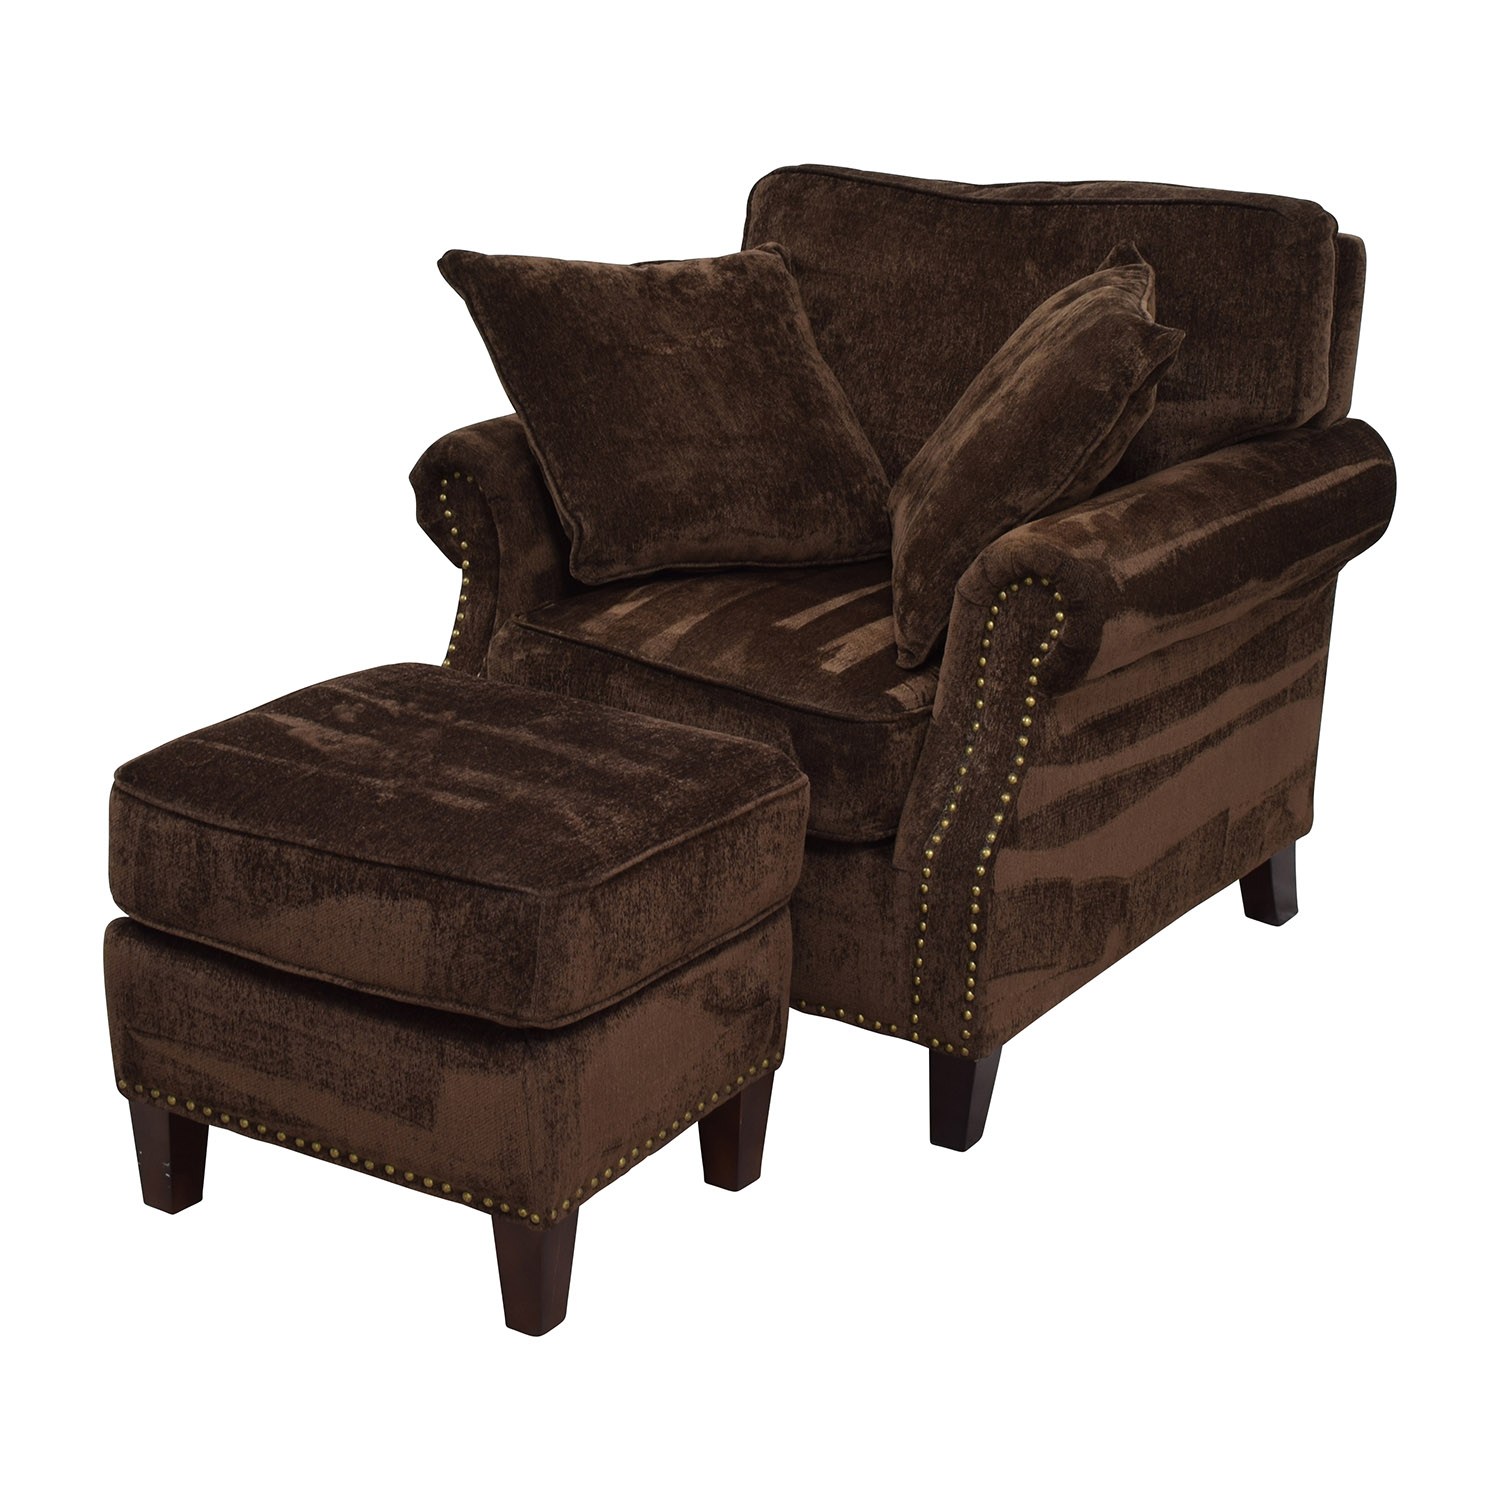 55% OFF Bob s Furniture Bob s Furniture Mirage Studded